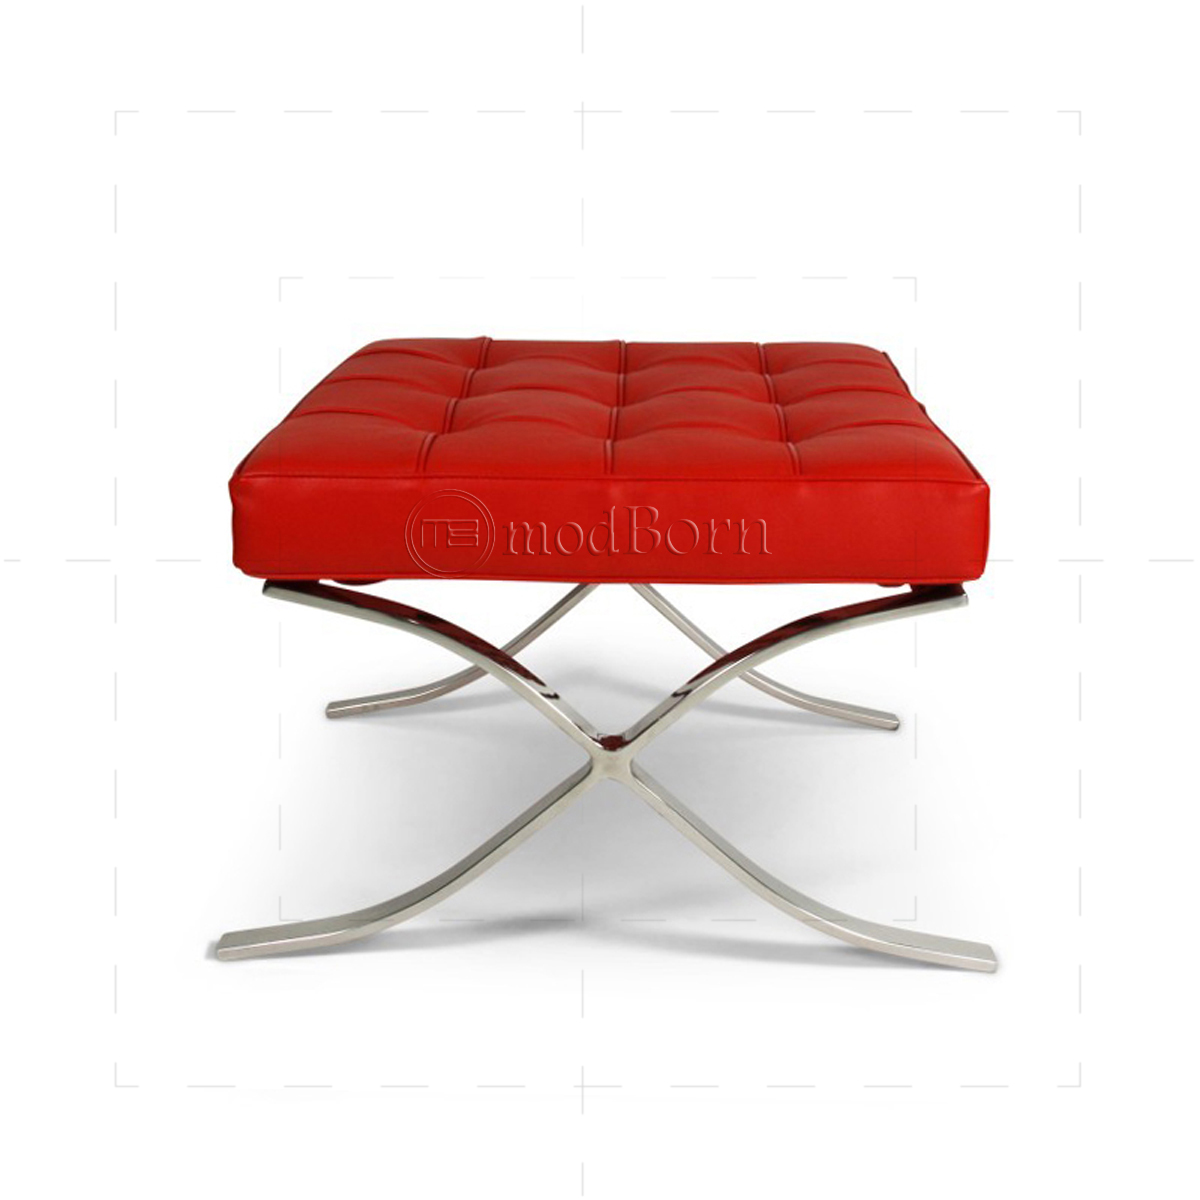 Barcelona Chair Style Ludwig Mies Van Der Rohe Barcelona Style Ottoman Red Leather